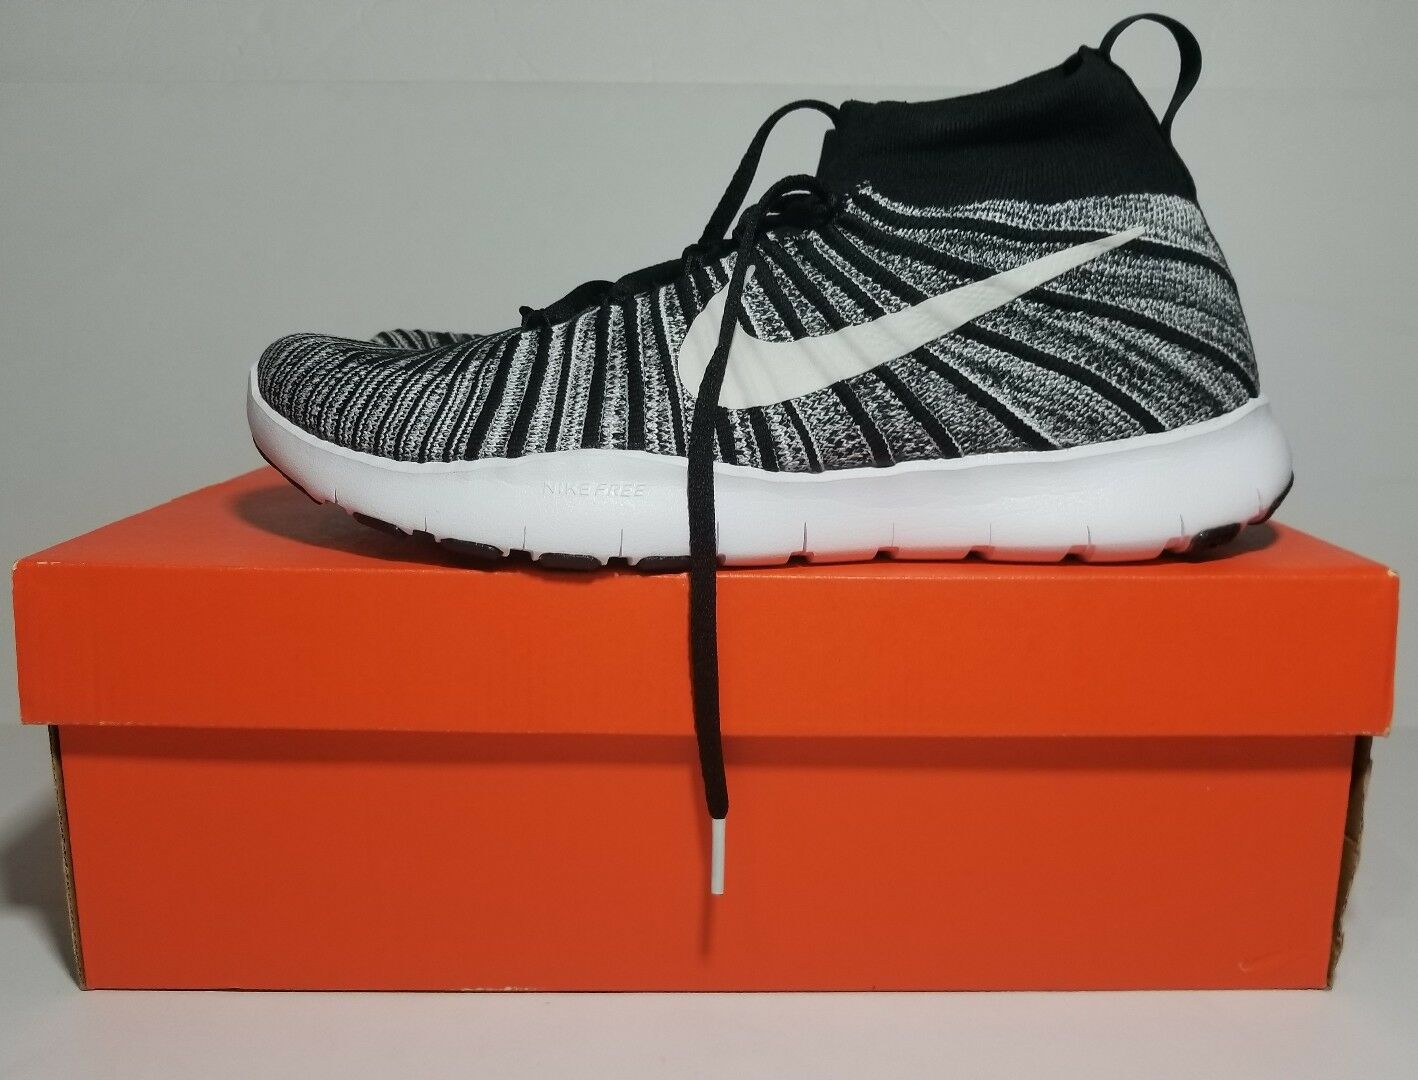 NEW NIKE FREE TRAIN FORCE FLYKNIT Black/White-Volt 833275 007 Price reduction Special limited time Cheap women's shoes women's shoes